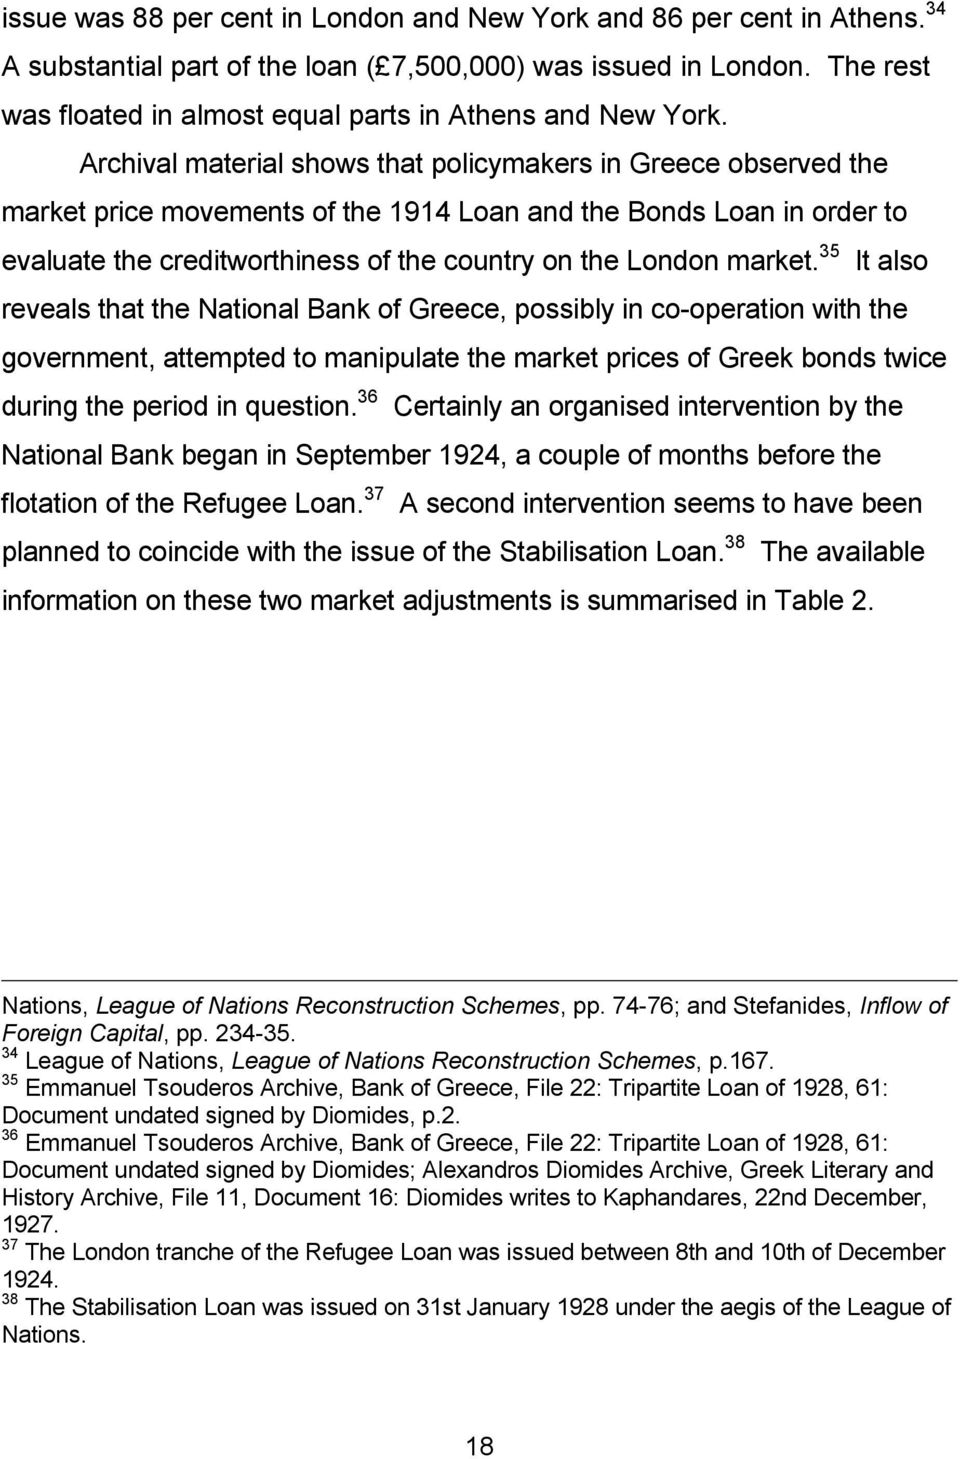 Archival material shows that policymakers in Greece observed the market price movements of the 1914 Loan and the Bonds Loan in order to evaluate the creditworthiness of the country on the London